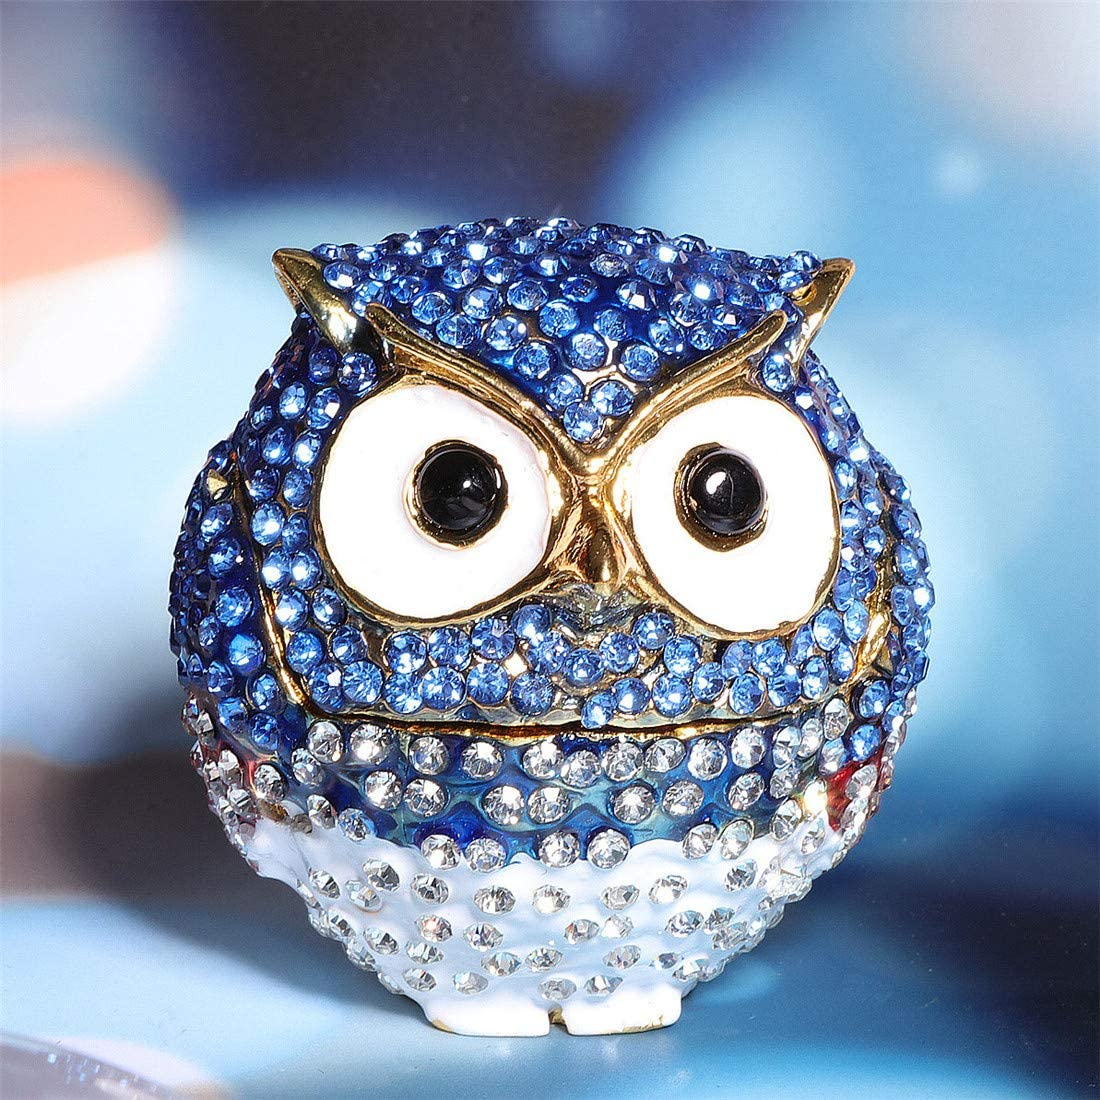 Waltz&F Diamond Light Blue Owl TrinketBox Hinged Hand-painted Figurine Collectible Ring Holder